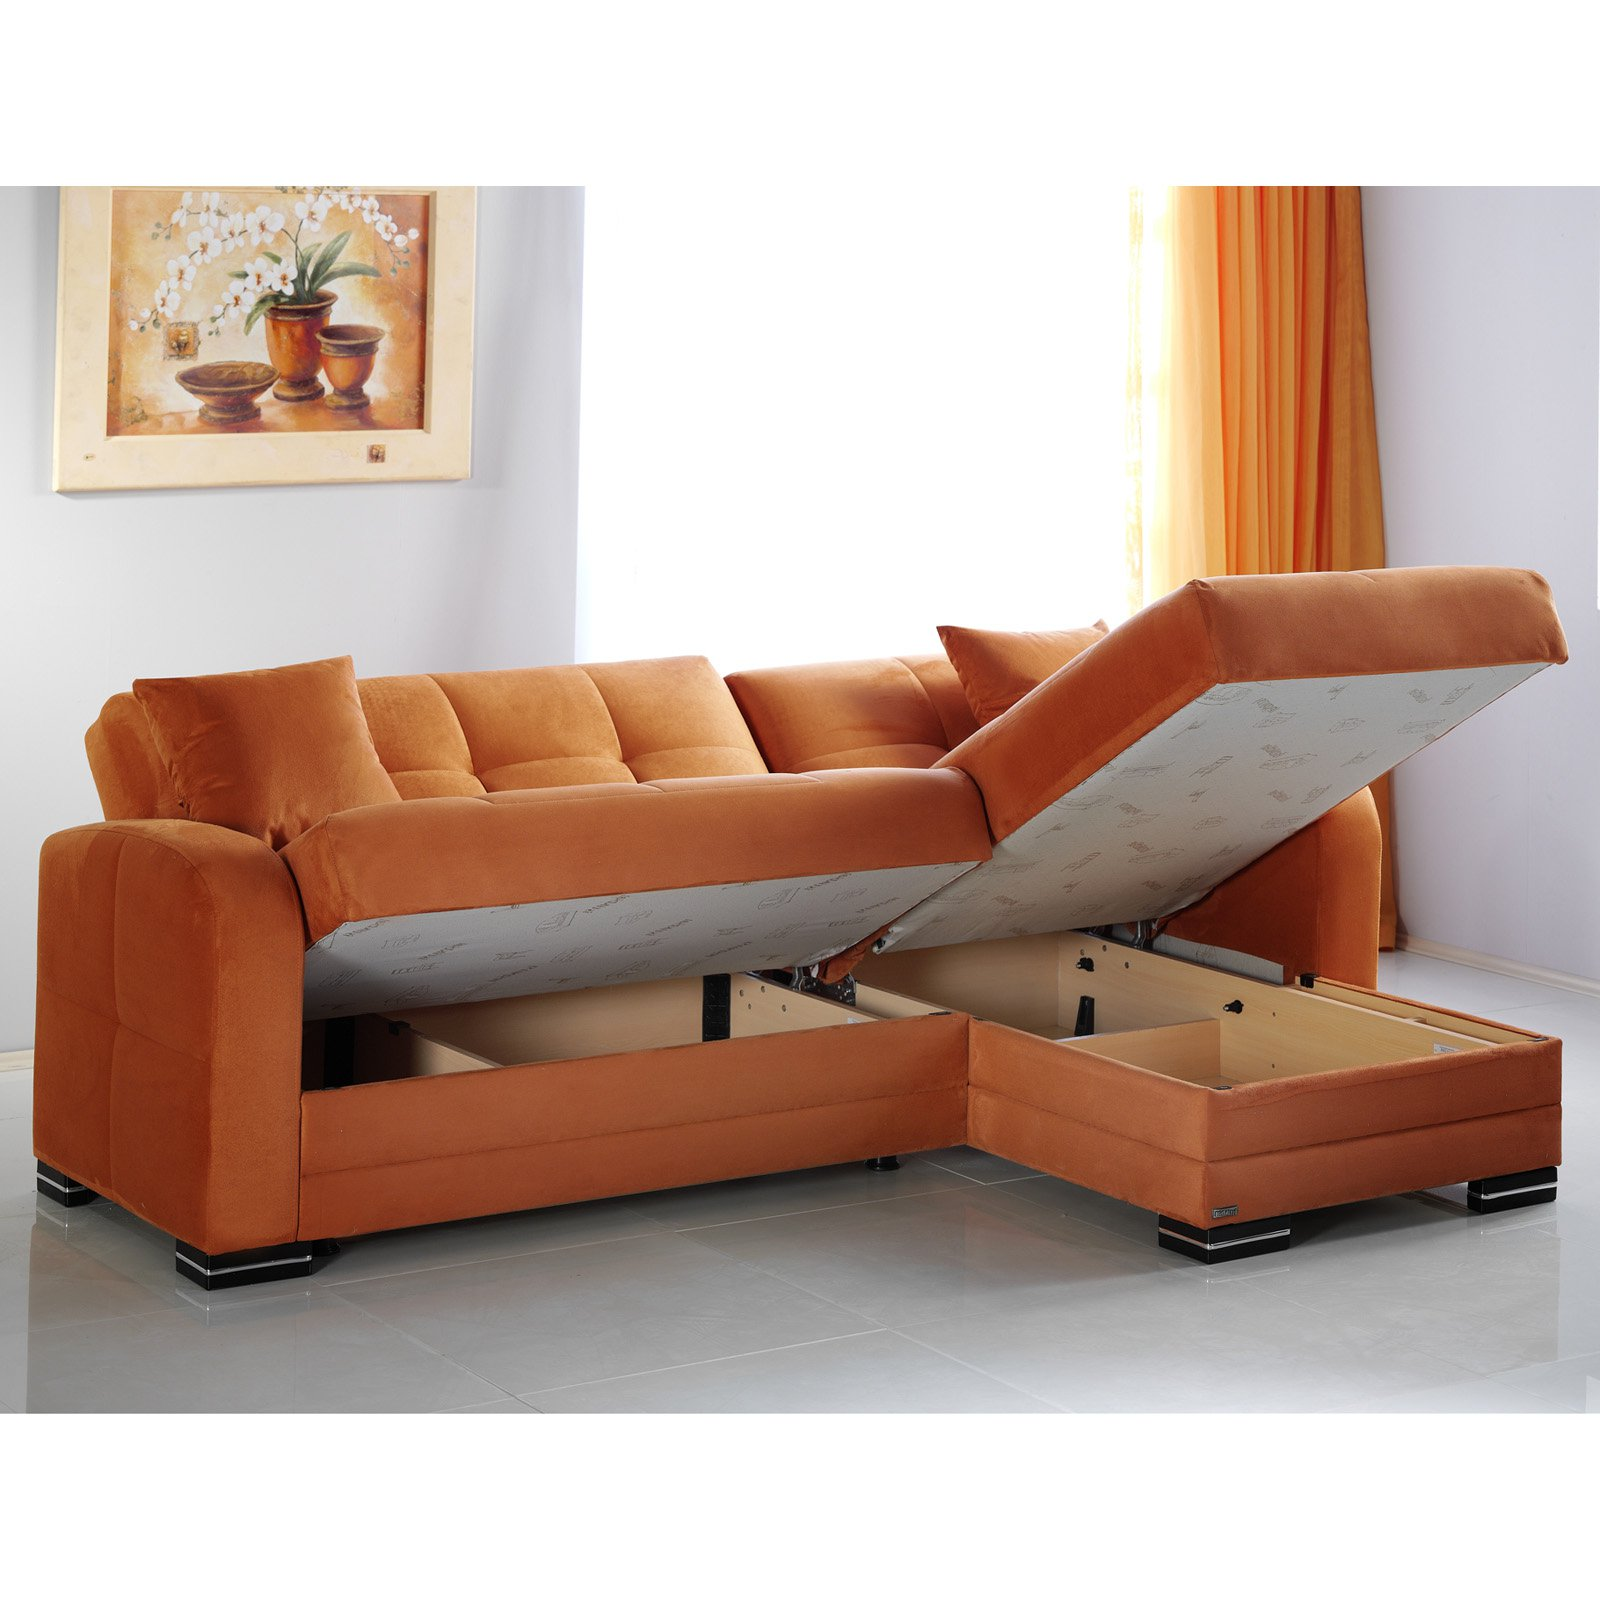 Istikbal Kubo Rainbow Orange Microfiber Sectional Sofa Walmart